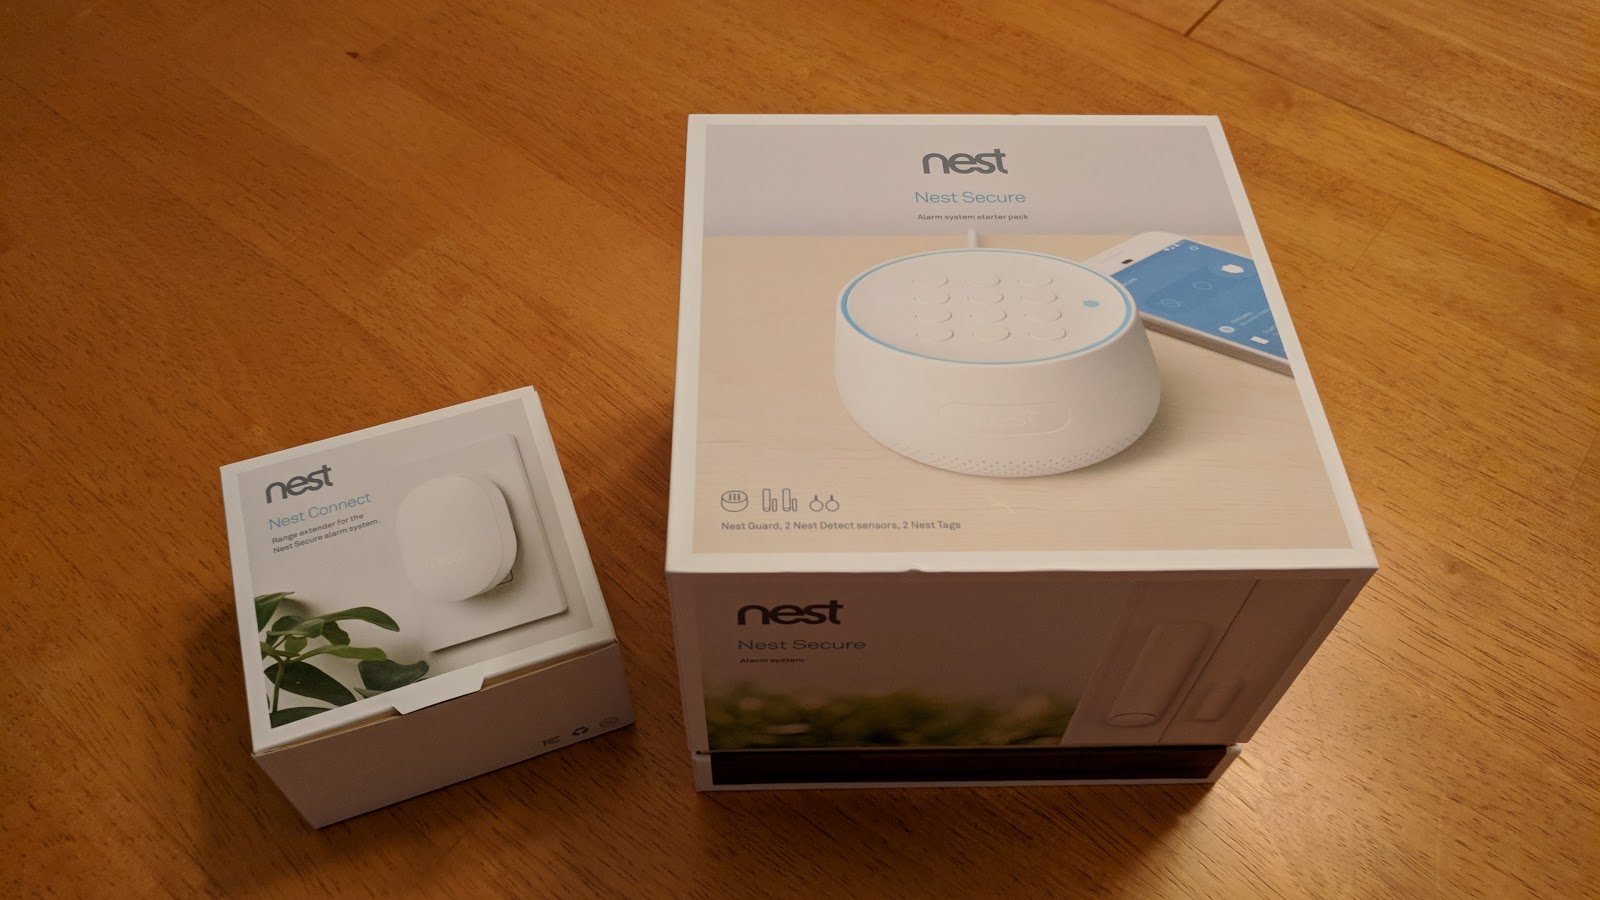 Bryan Hill's Blog: Product Review: Nest - Secure Alarm